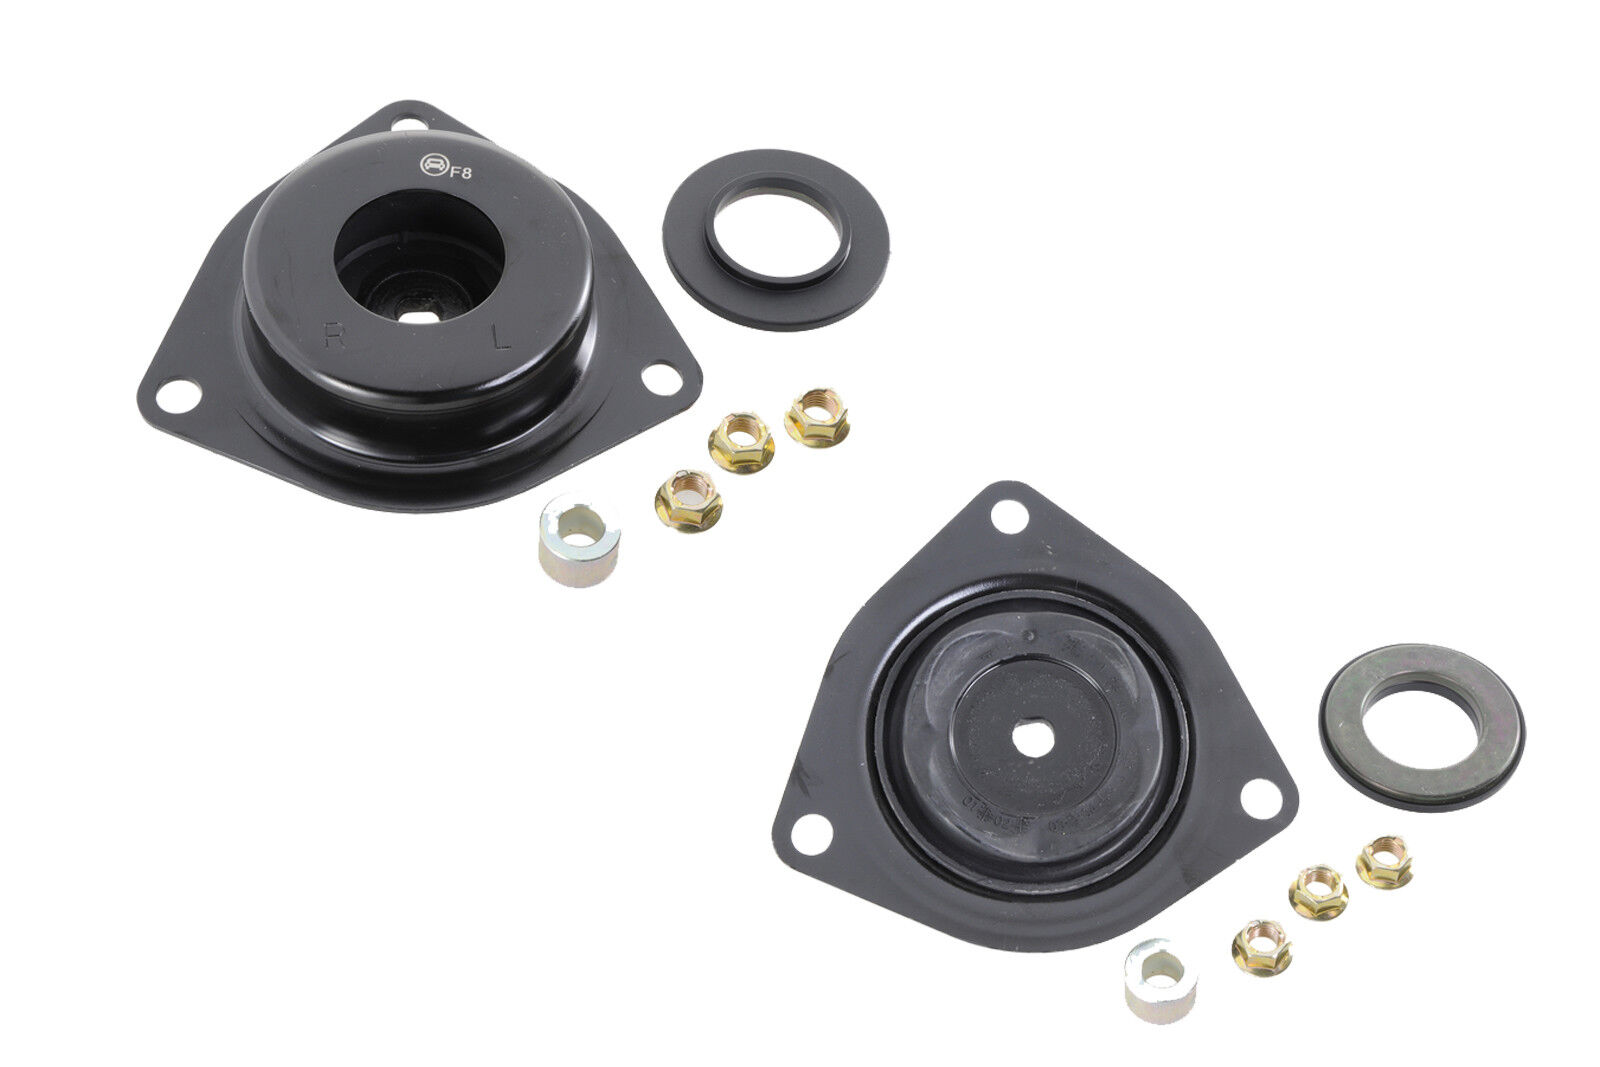 small resolution of details about suspension replacement parts front strut mounts lh rh for nissan pathfinder 04